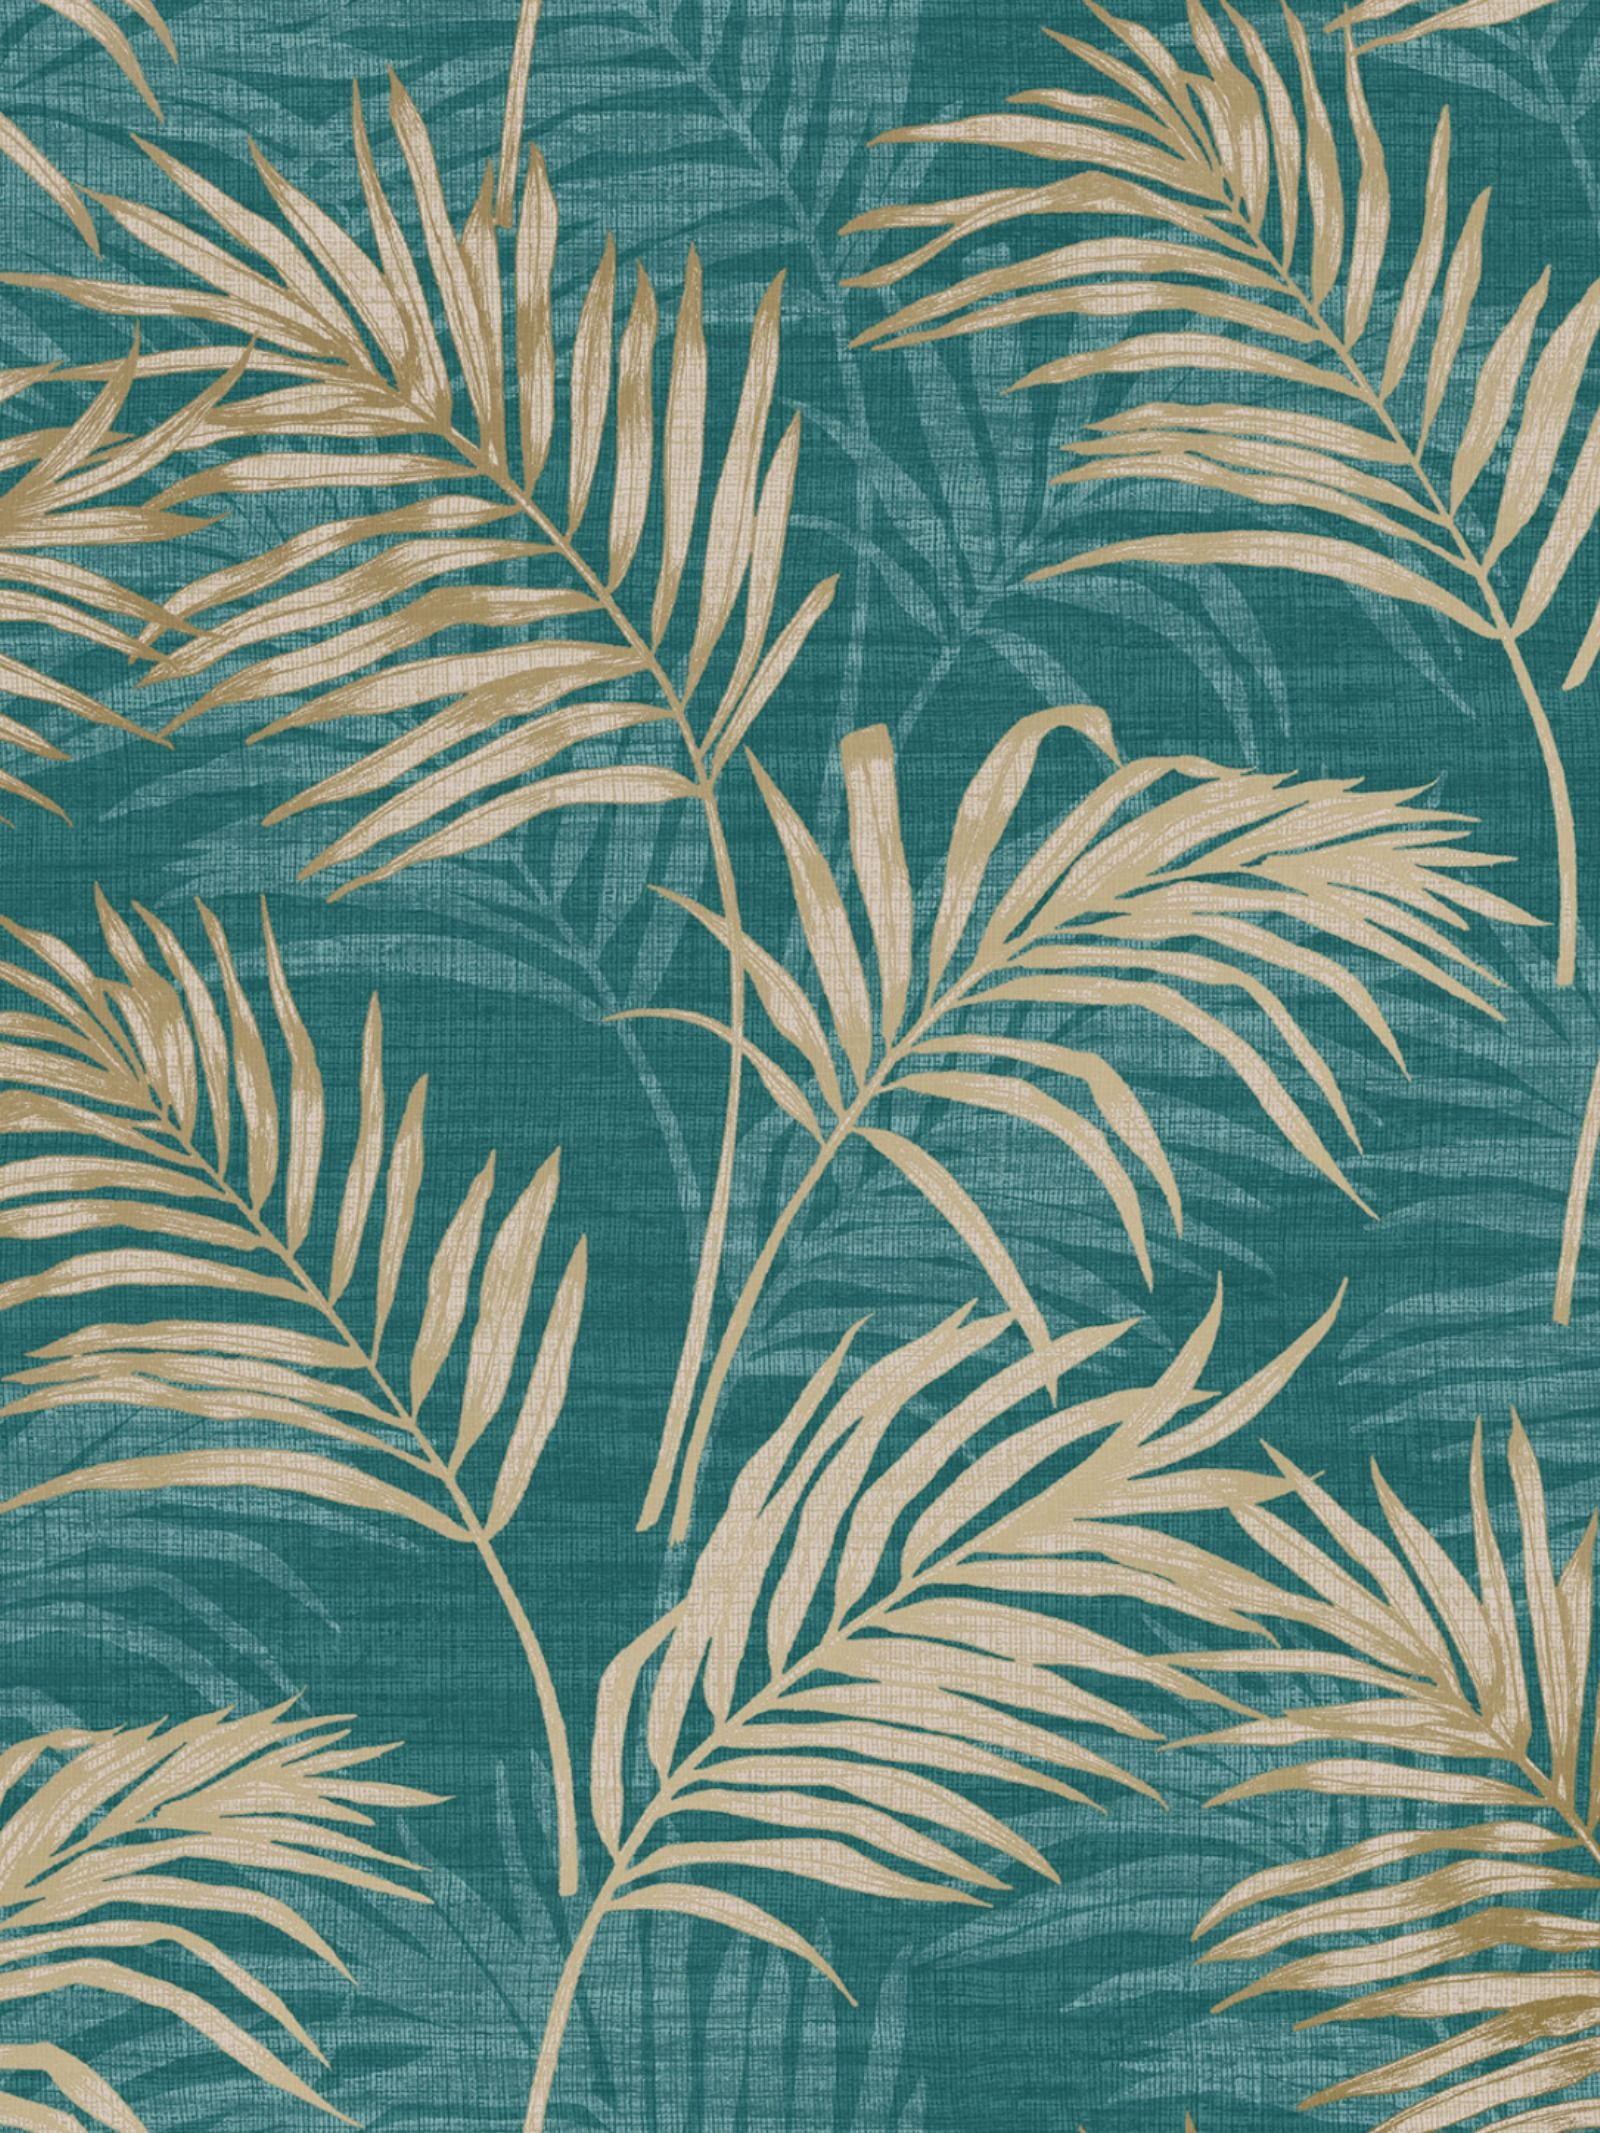 Lounge Palm Wallpaper Teal Gold Grandeco A46105 Leaf Wallpaper Palm Leaf Wallpaper Palm Wallpaper